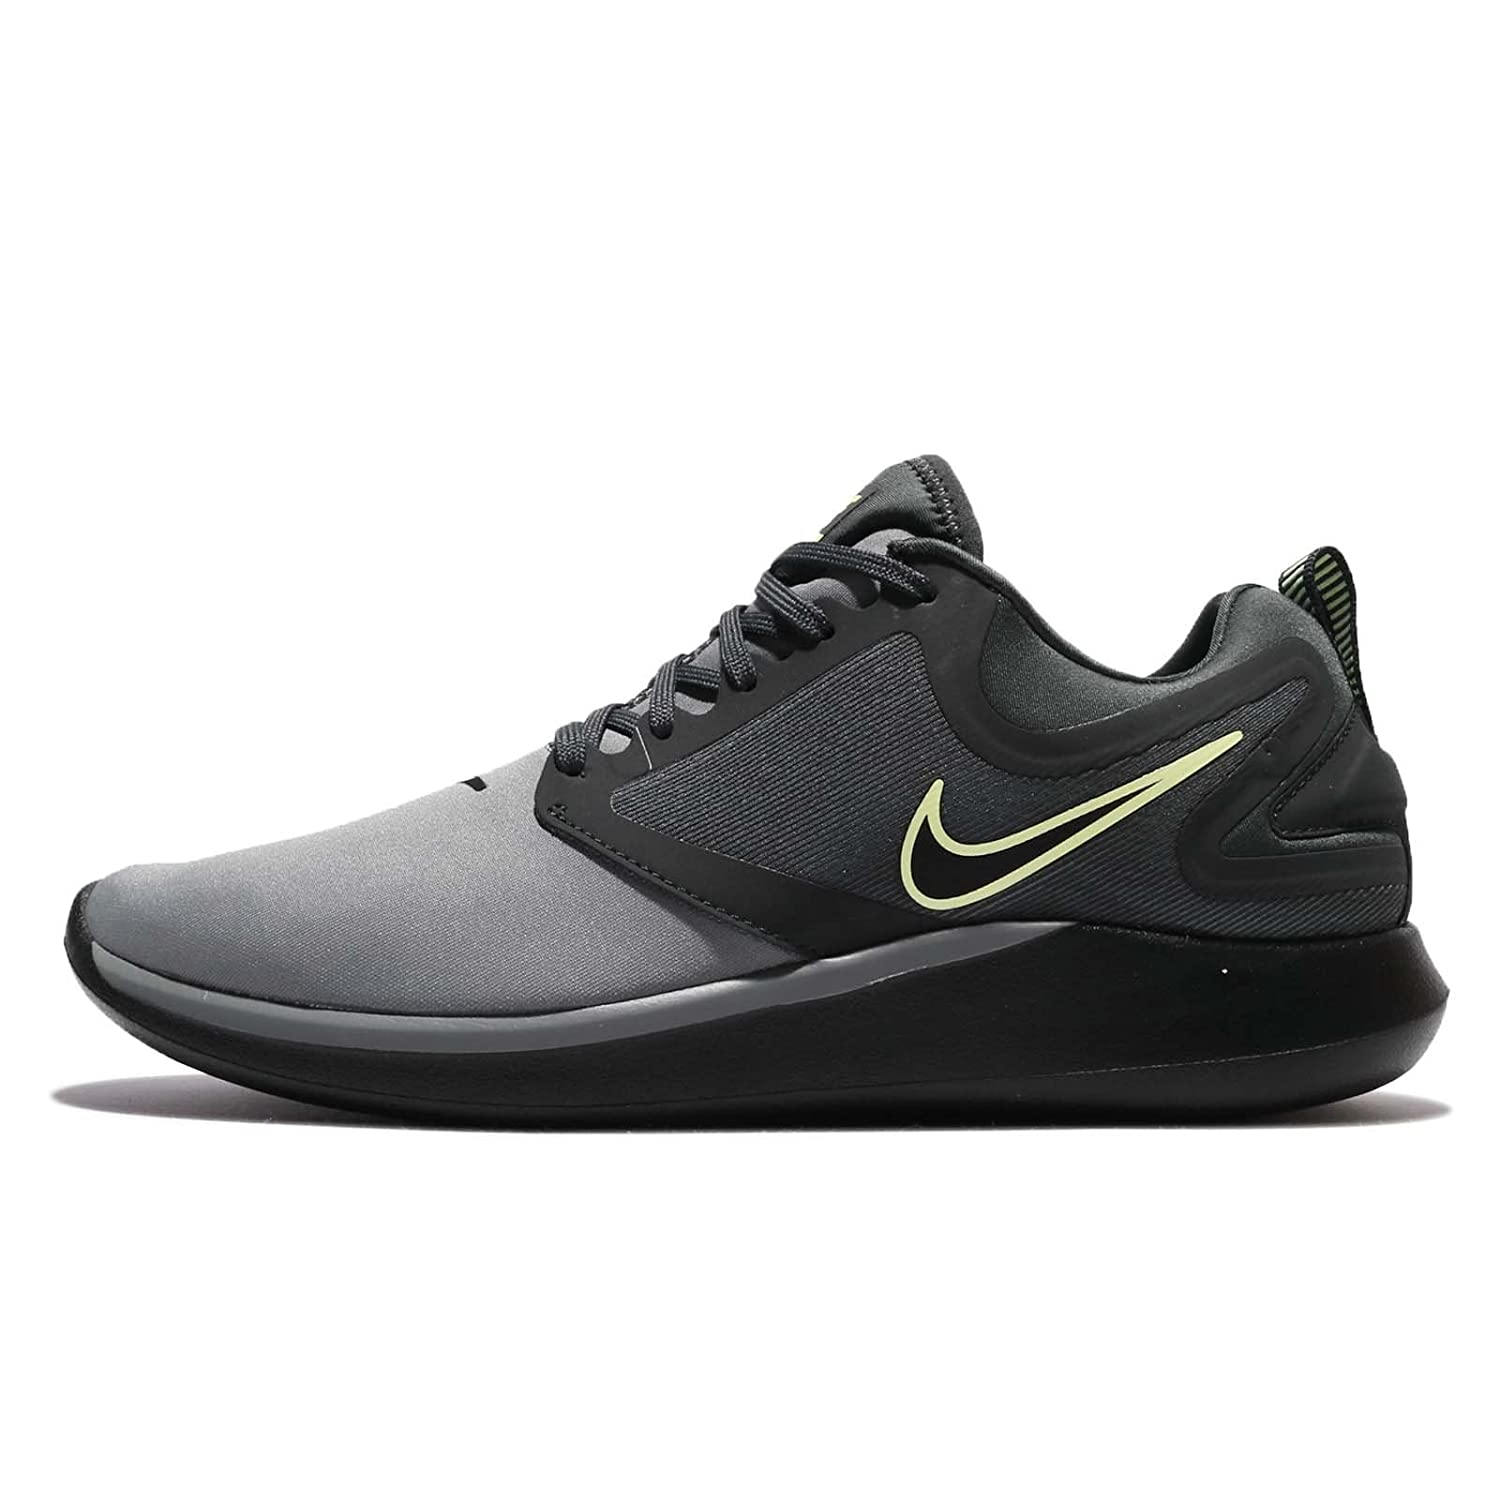 NIKE Men's Lunarsolo Grey Running Training Shoes B06WVBHB33 Medium / 7.5 D(M) US|Cool Grey/Black-anthracite-barely Volt